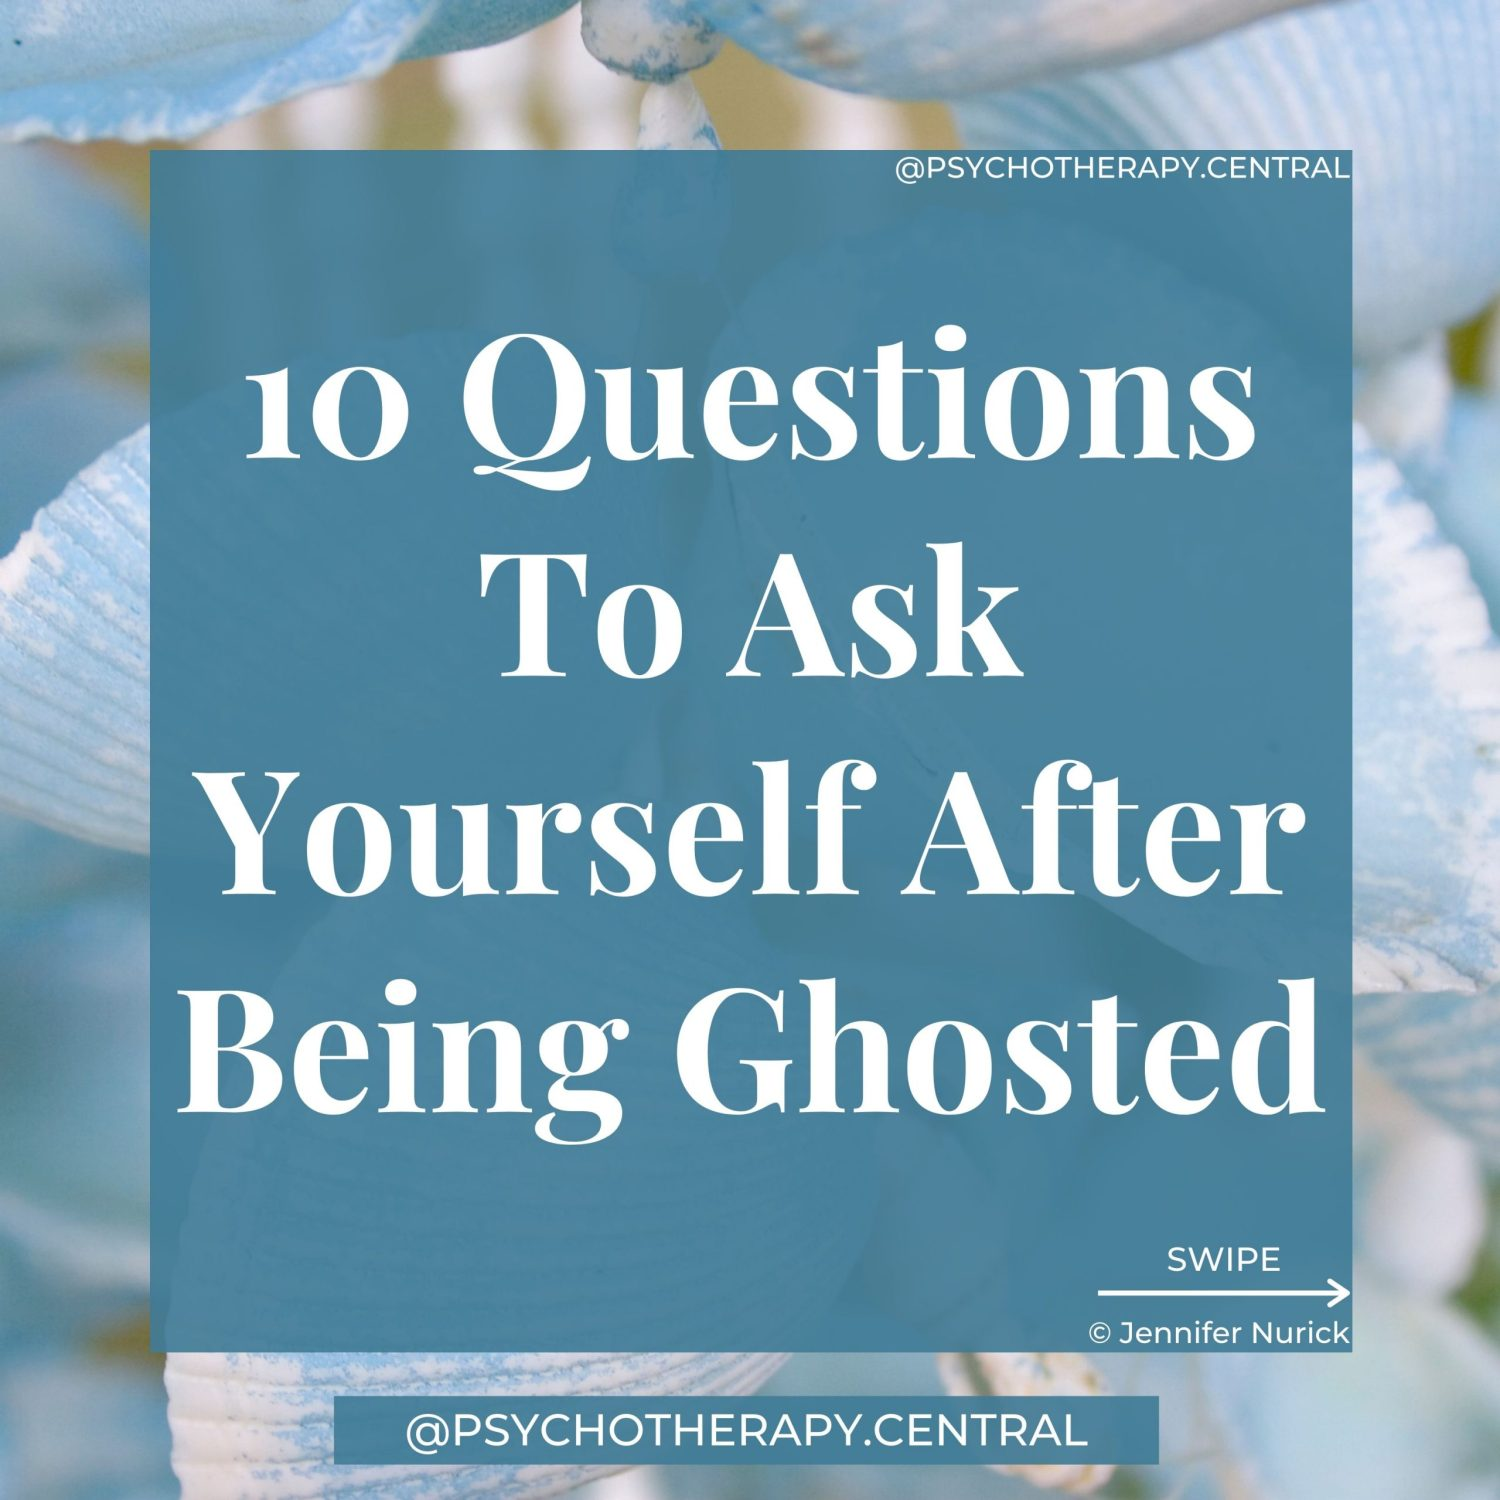 10 Questions To Ask Yourself After Being Ghosted